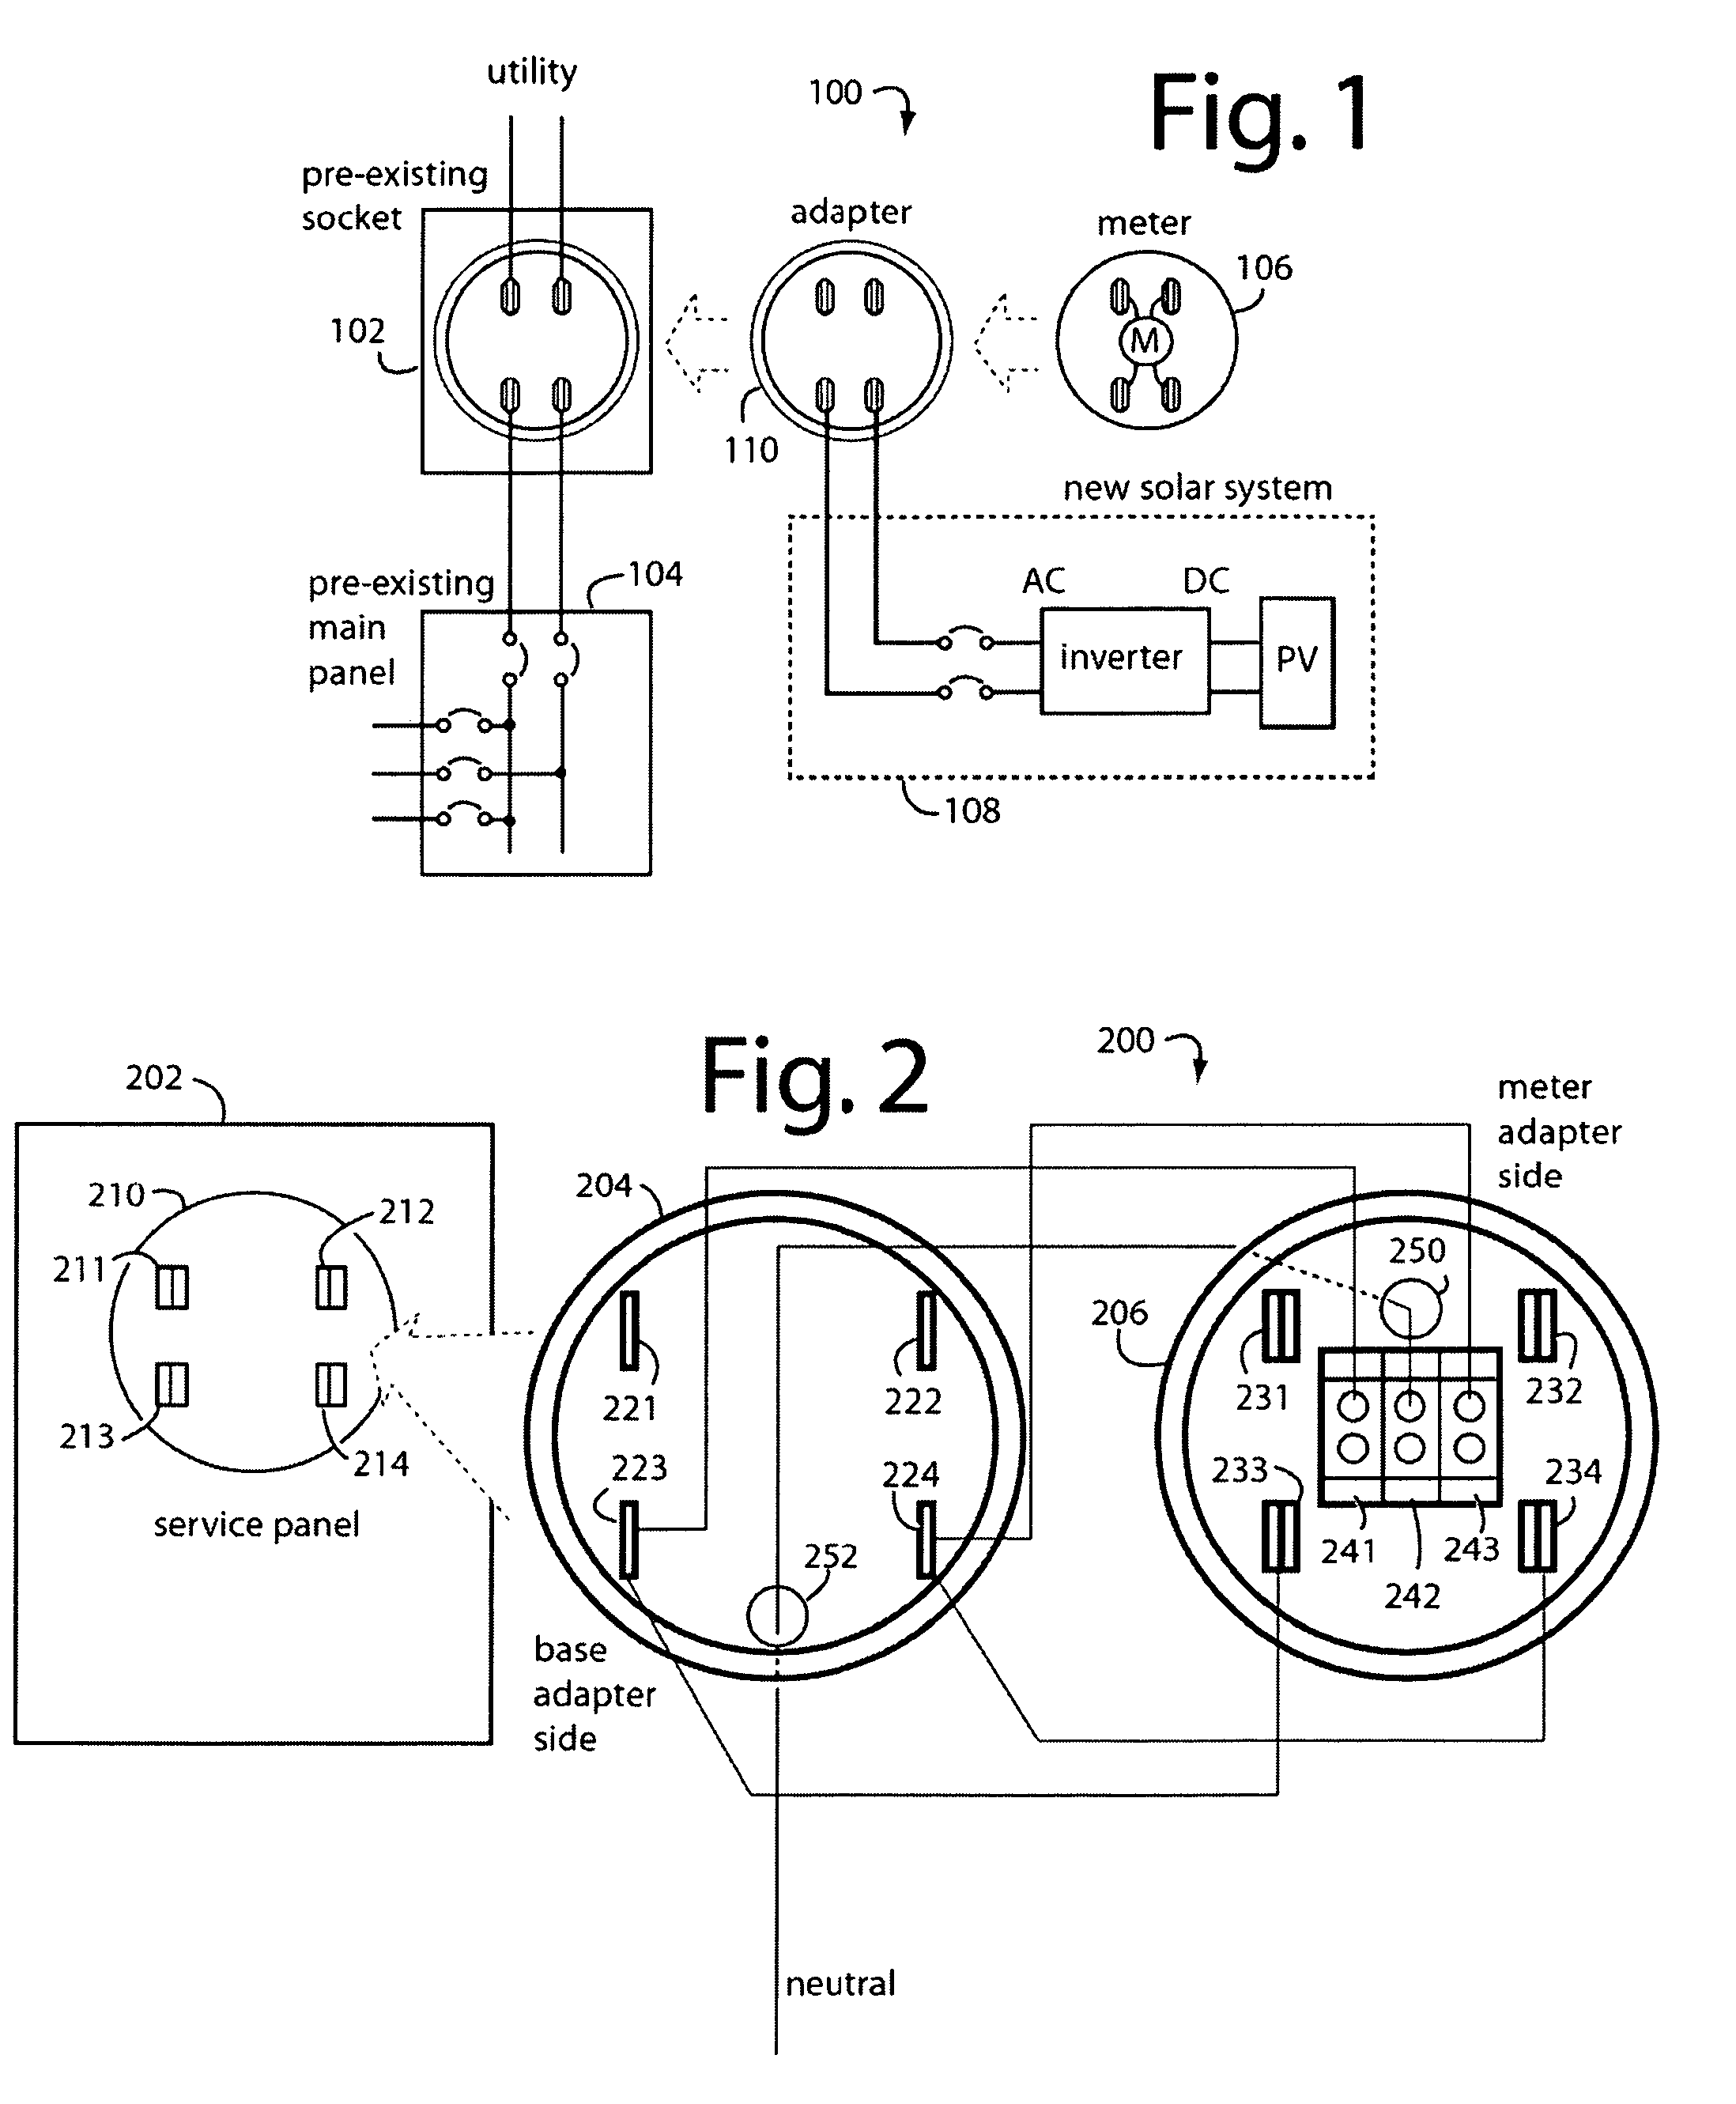 US07648389 20100119 D00001 patent us7648389 supply side backfeed meter socket adapter 13 amp socket wiring diagram at fashall.co